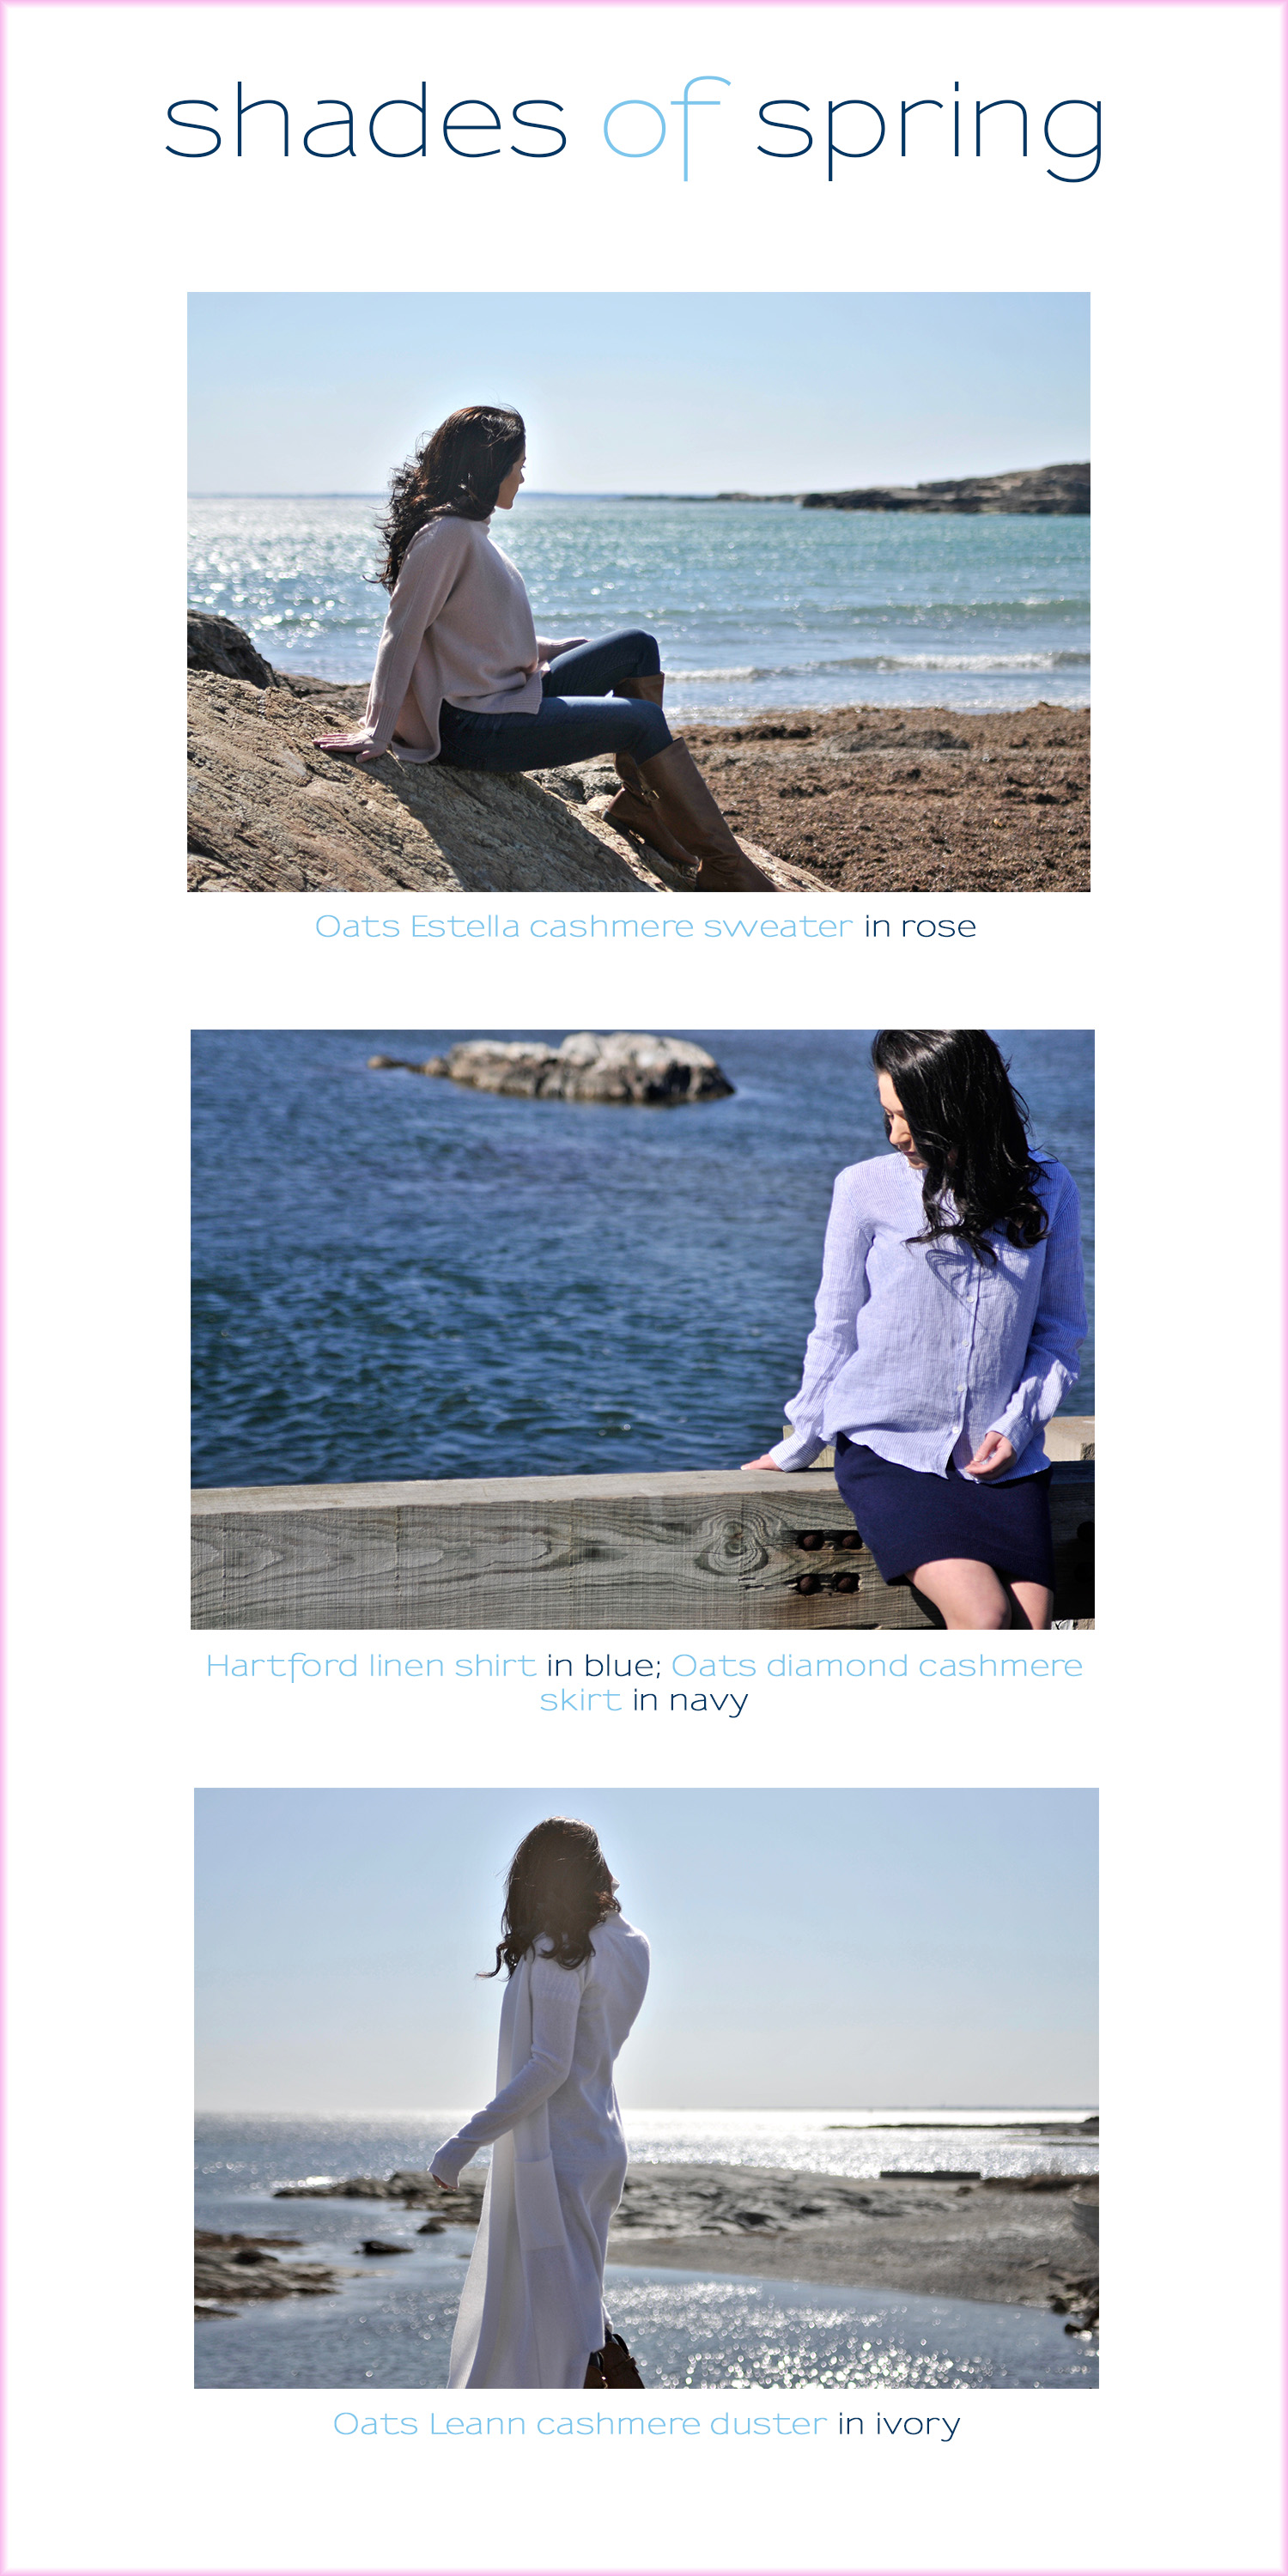 Oats cashmere sweater